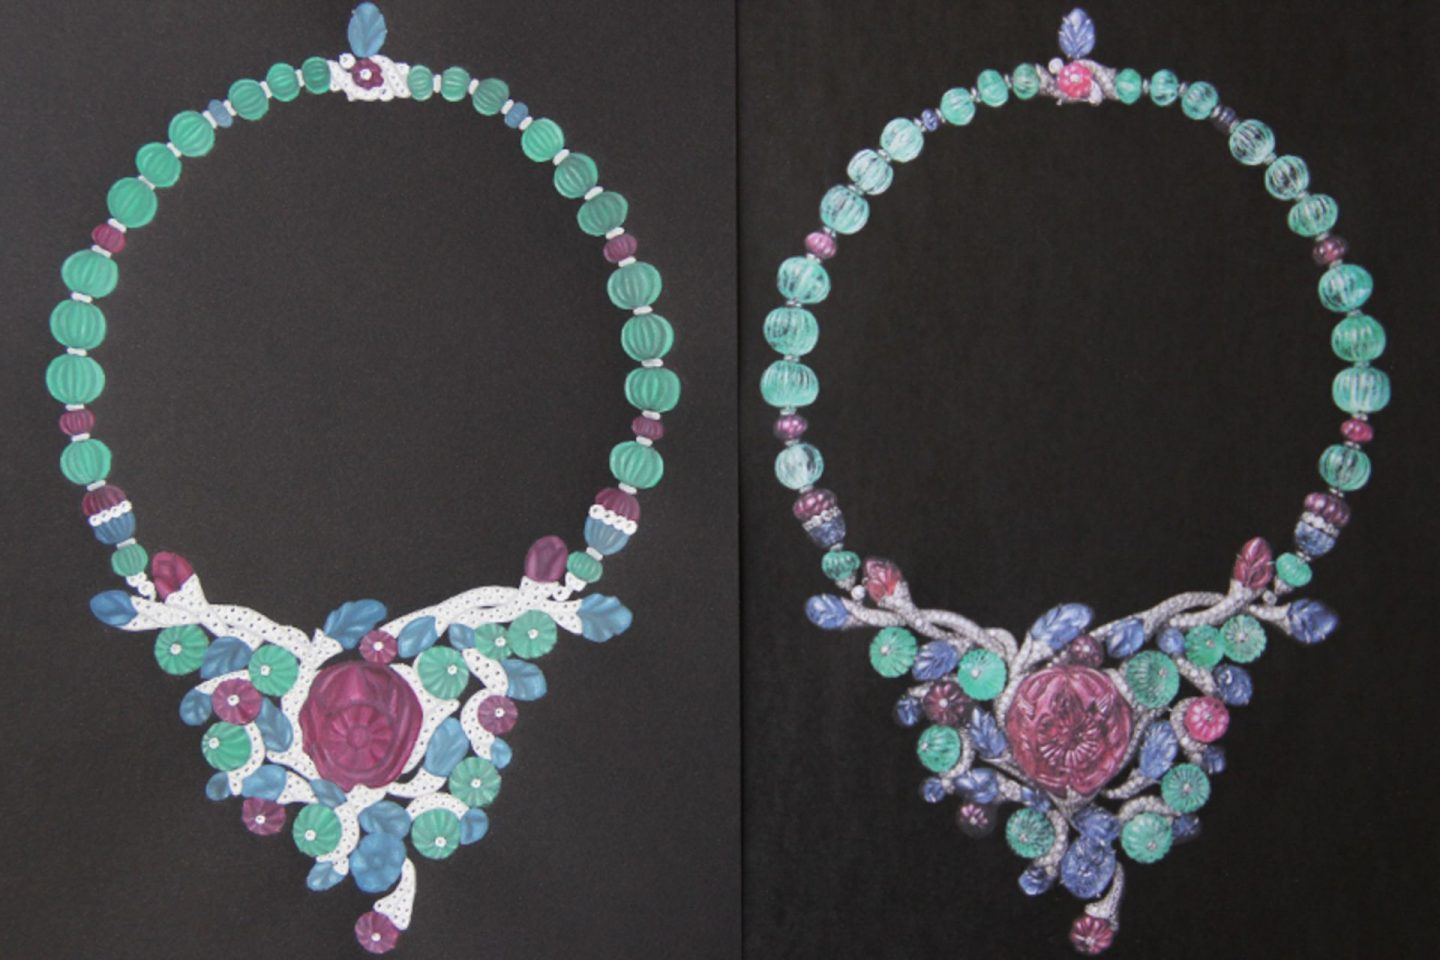 Shine & draw Jewelry drawing reproduction flora Cartier necklace undercovertoad